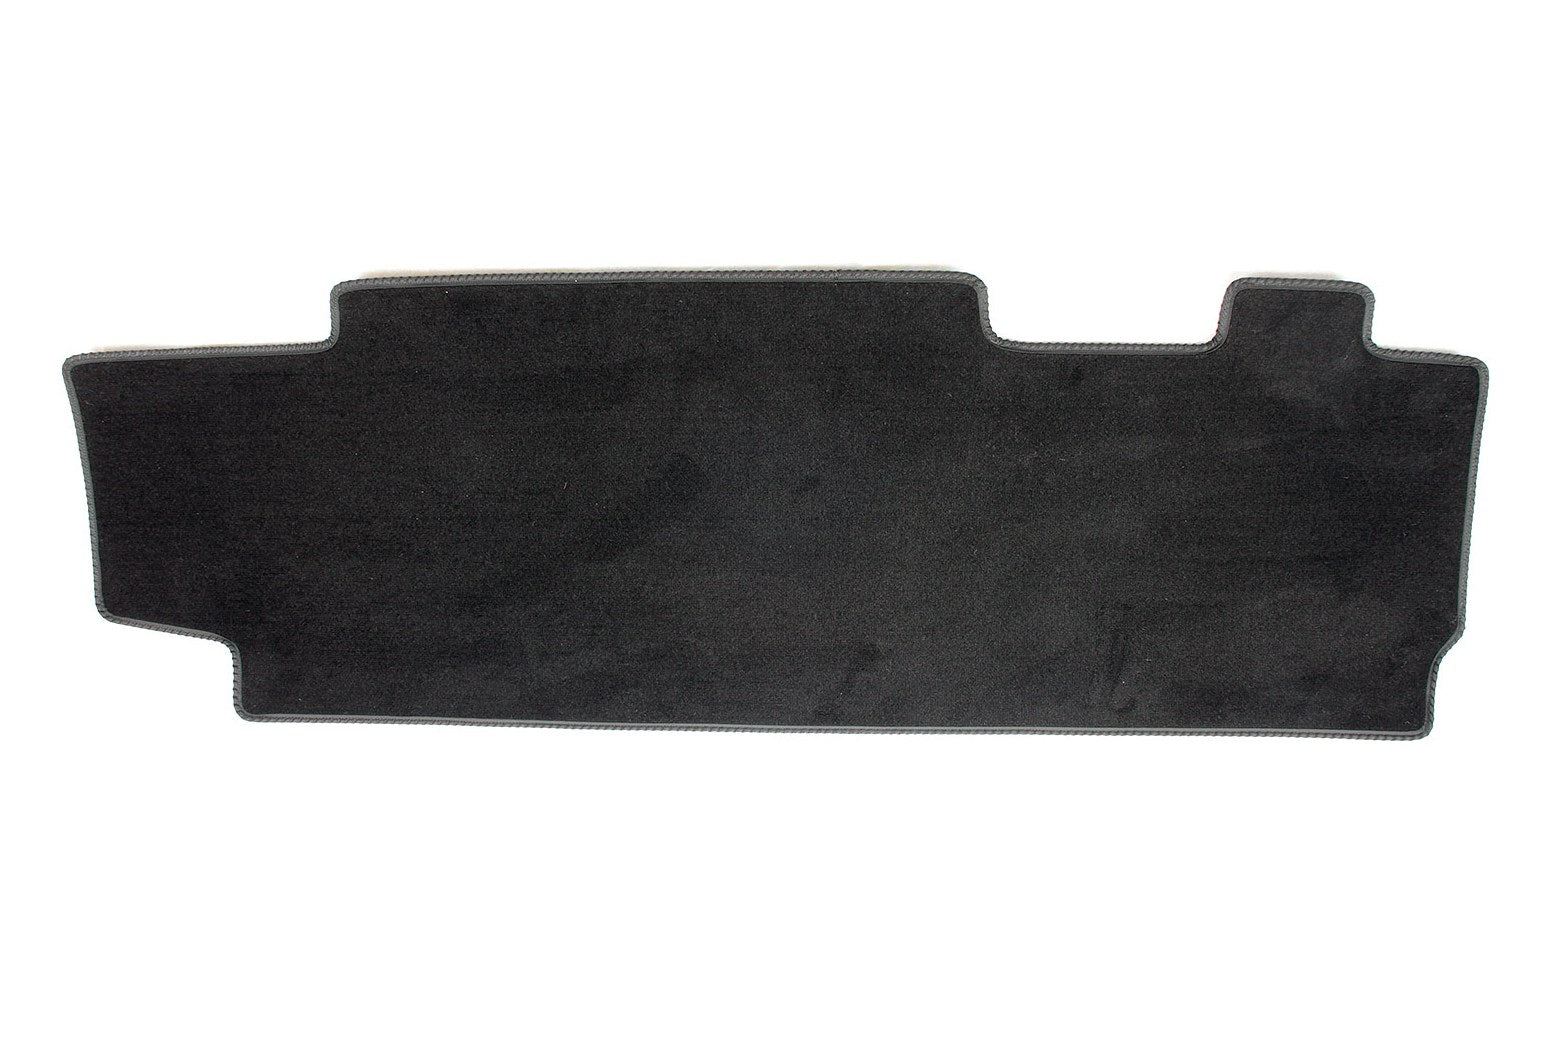 T5 combi rear mat for single sliding door models